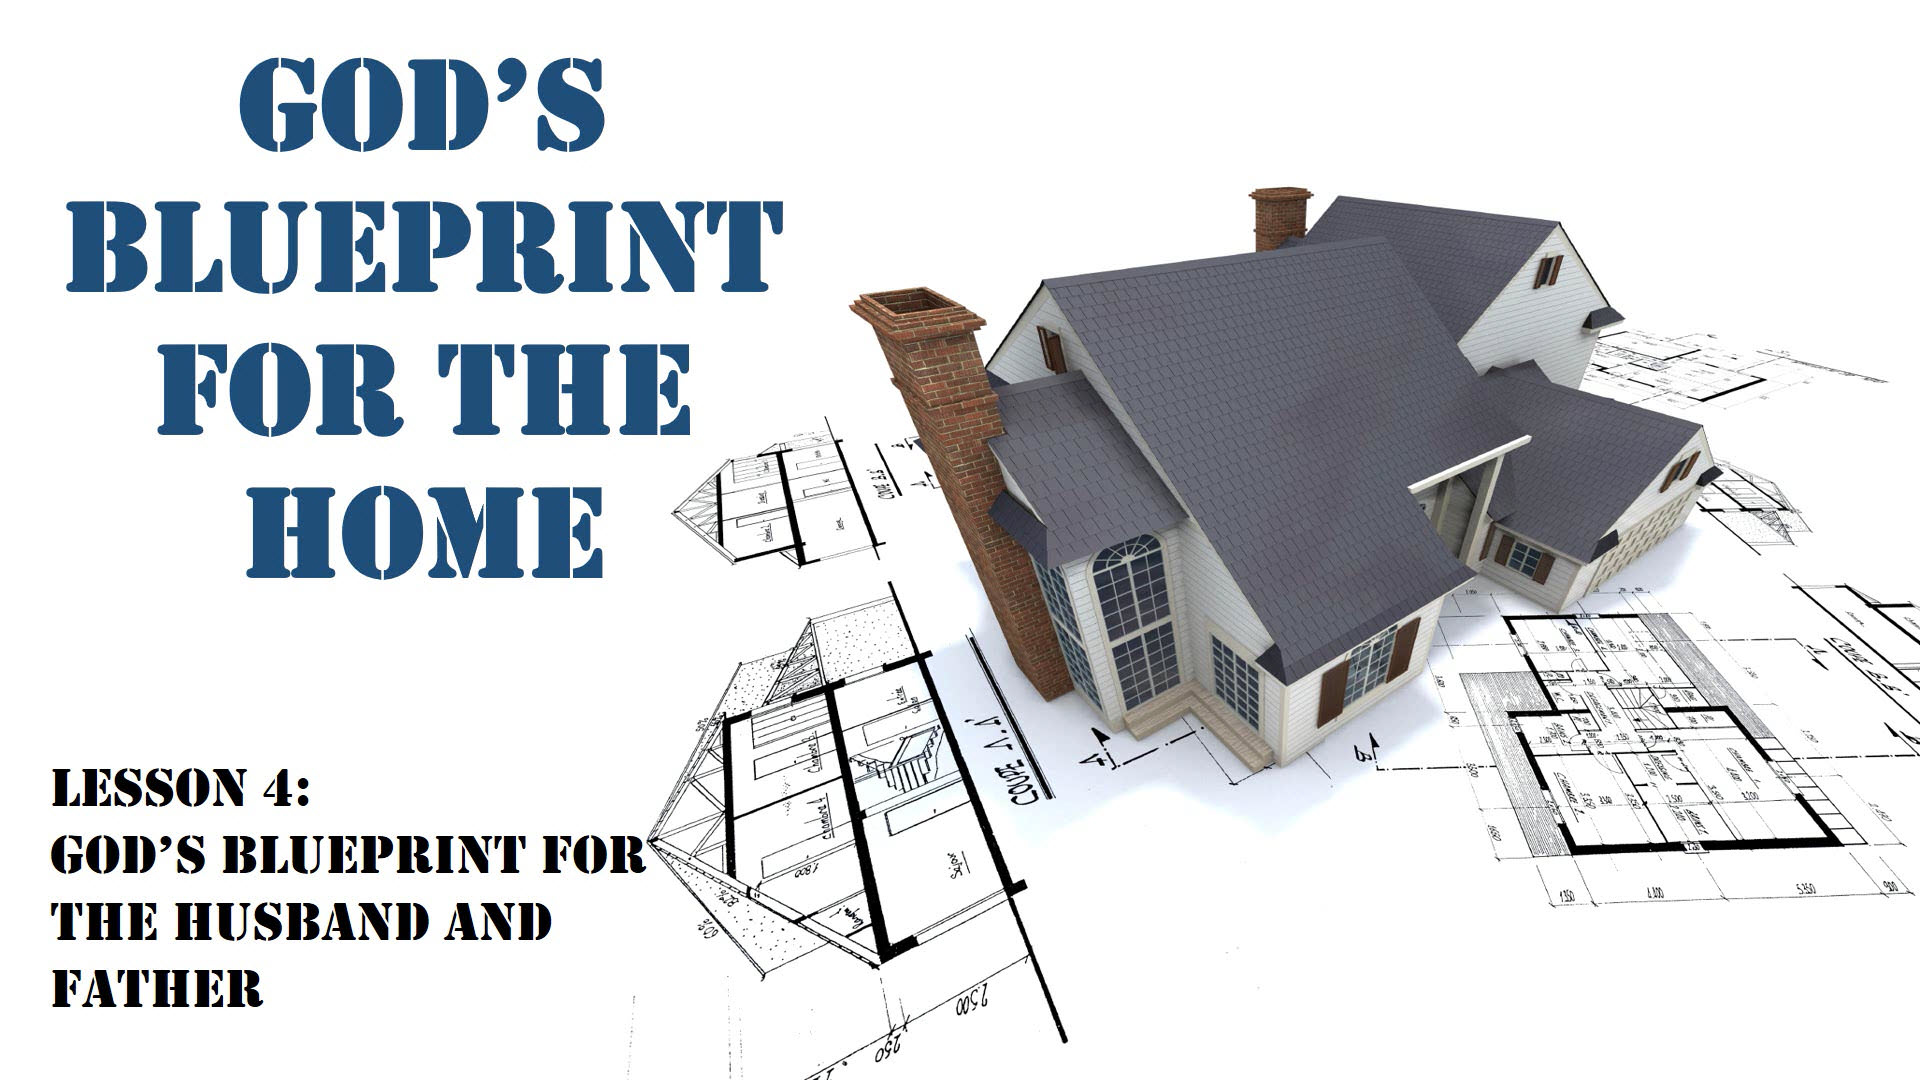 God's Blueprint For The Home (Lesson 4: Gods Blueprint For The Husband And Father)